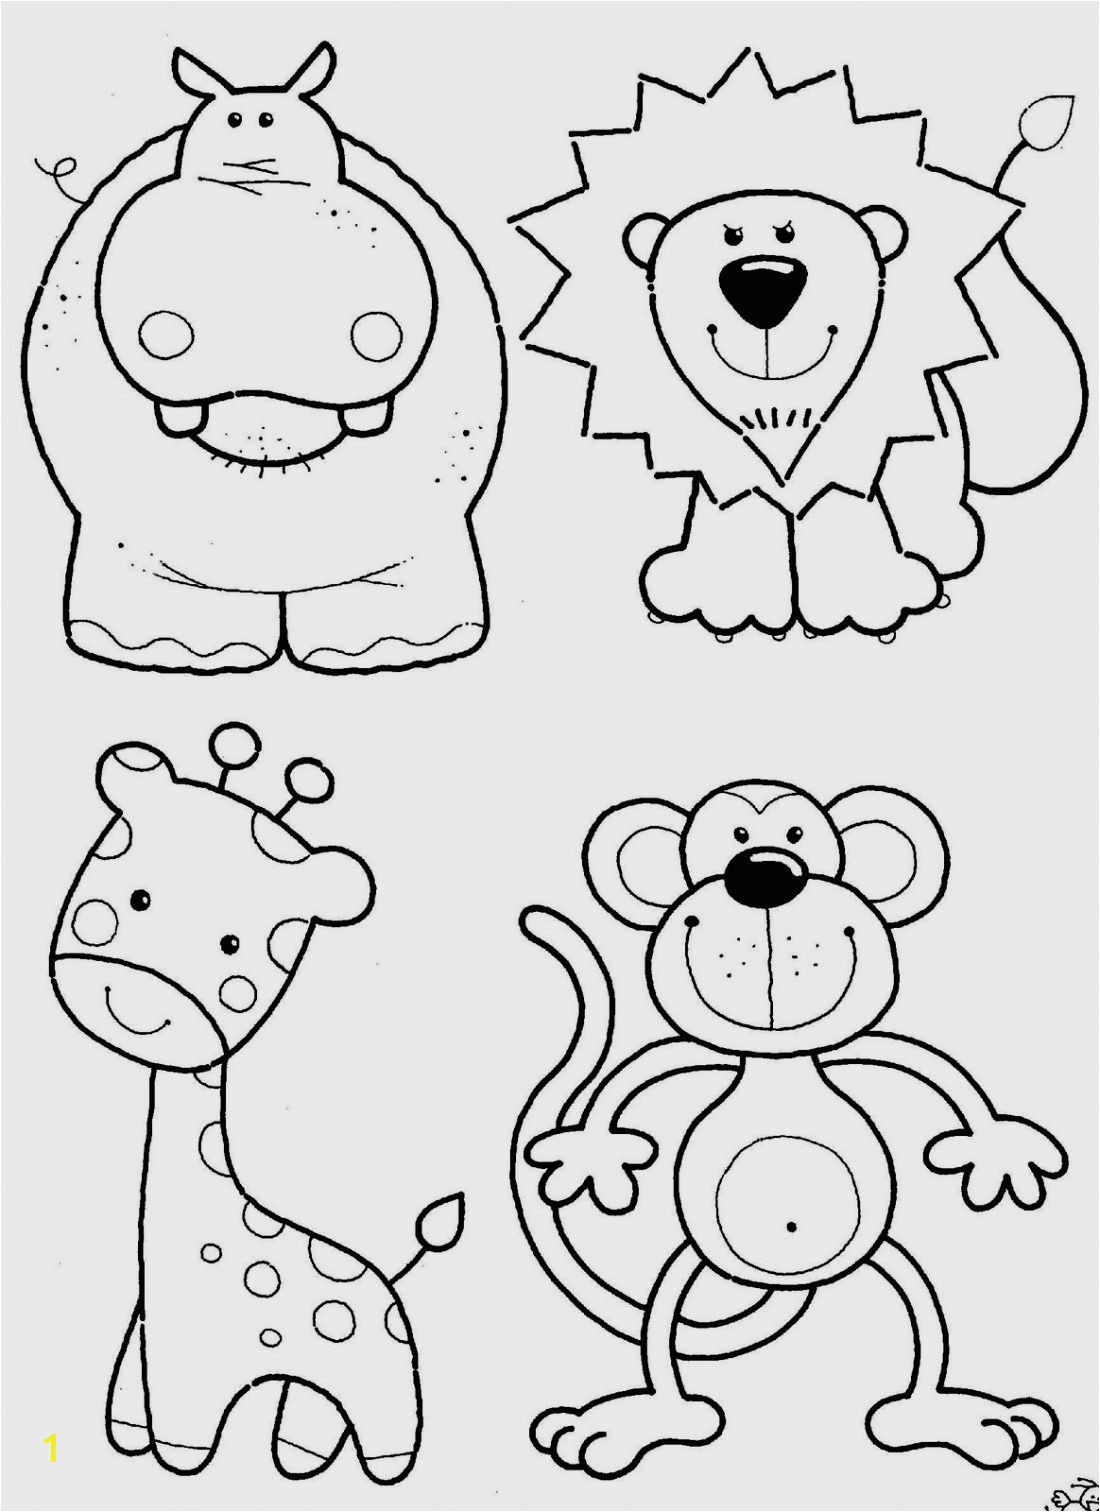 zoo coloring pictures for preschool zoo coloring pages free download on clipartmag coloring zoo pictures preschool for